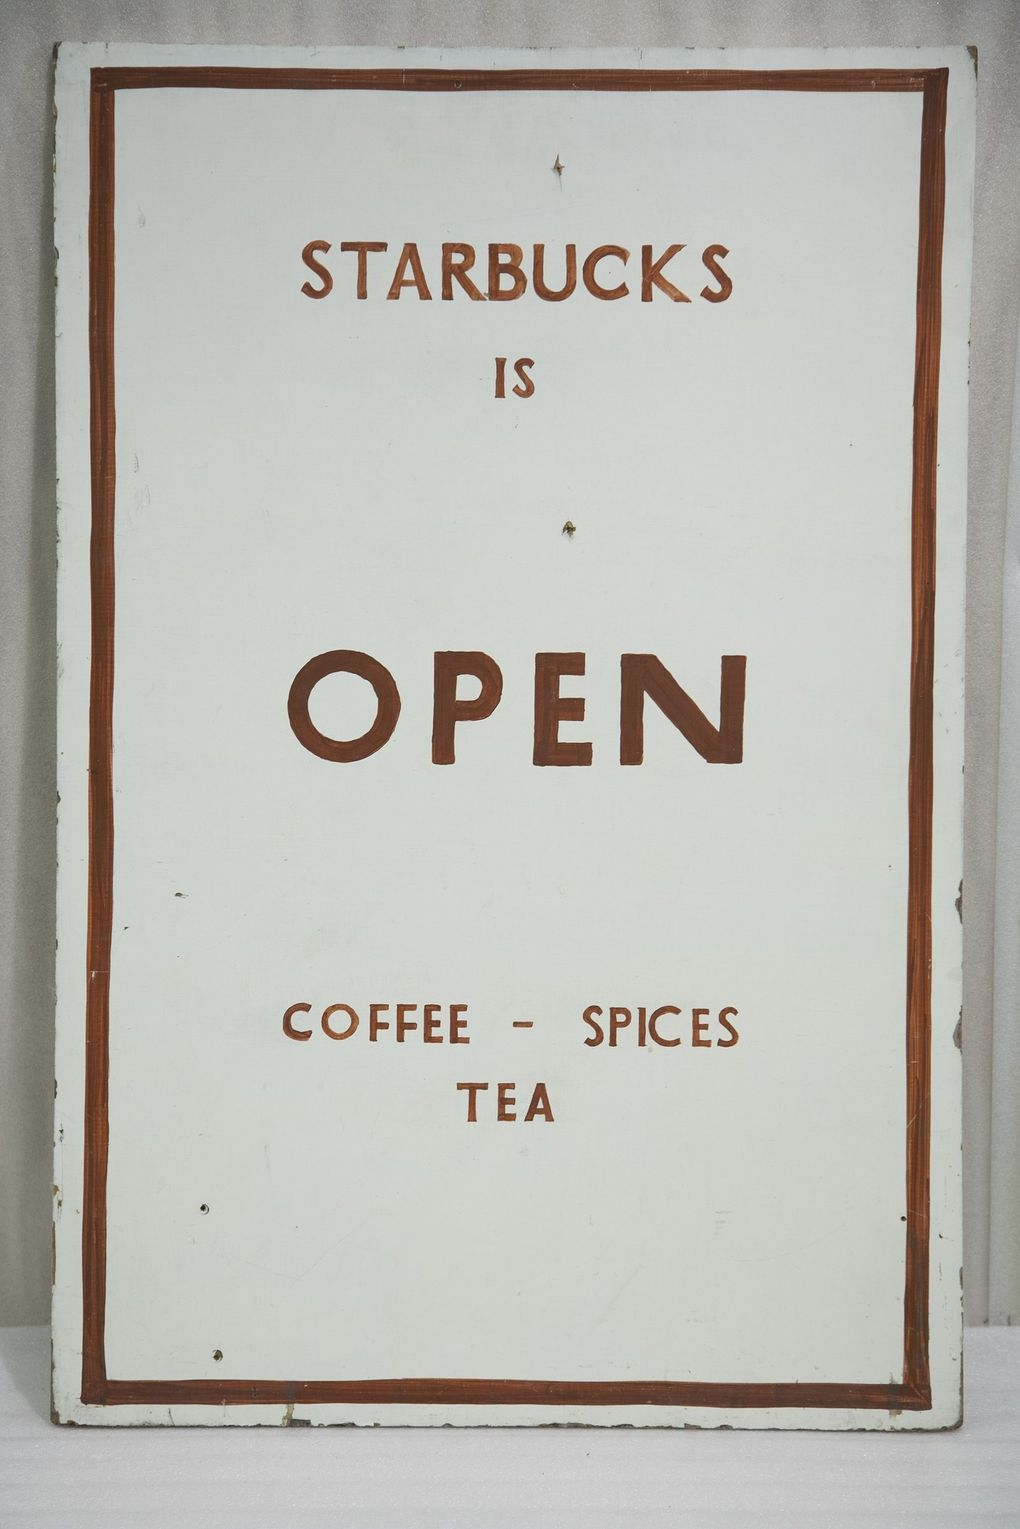 A hand-painted original sidewalk sign from the first Starbucks store in 1971 lives on at MOHAI. (Courtesy of MOHAI)